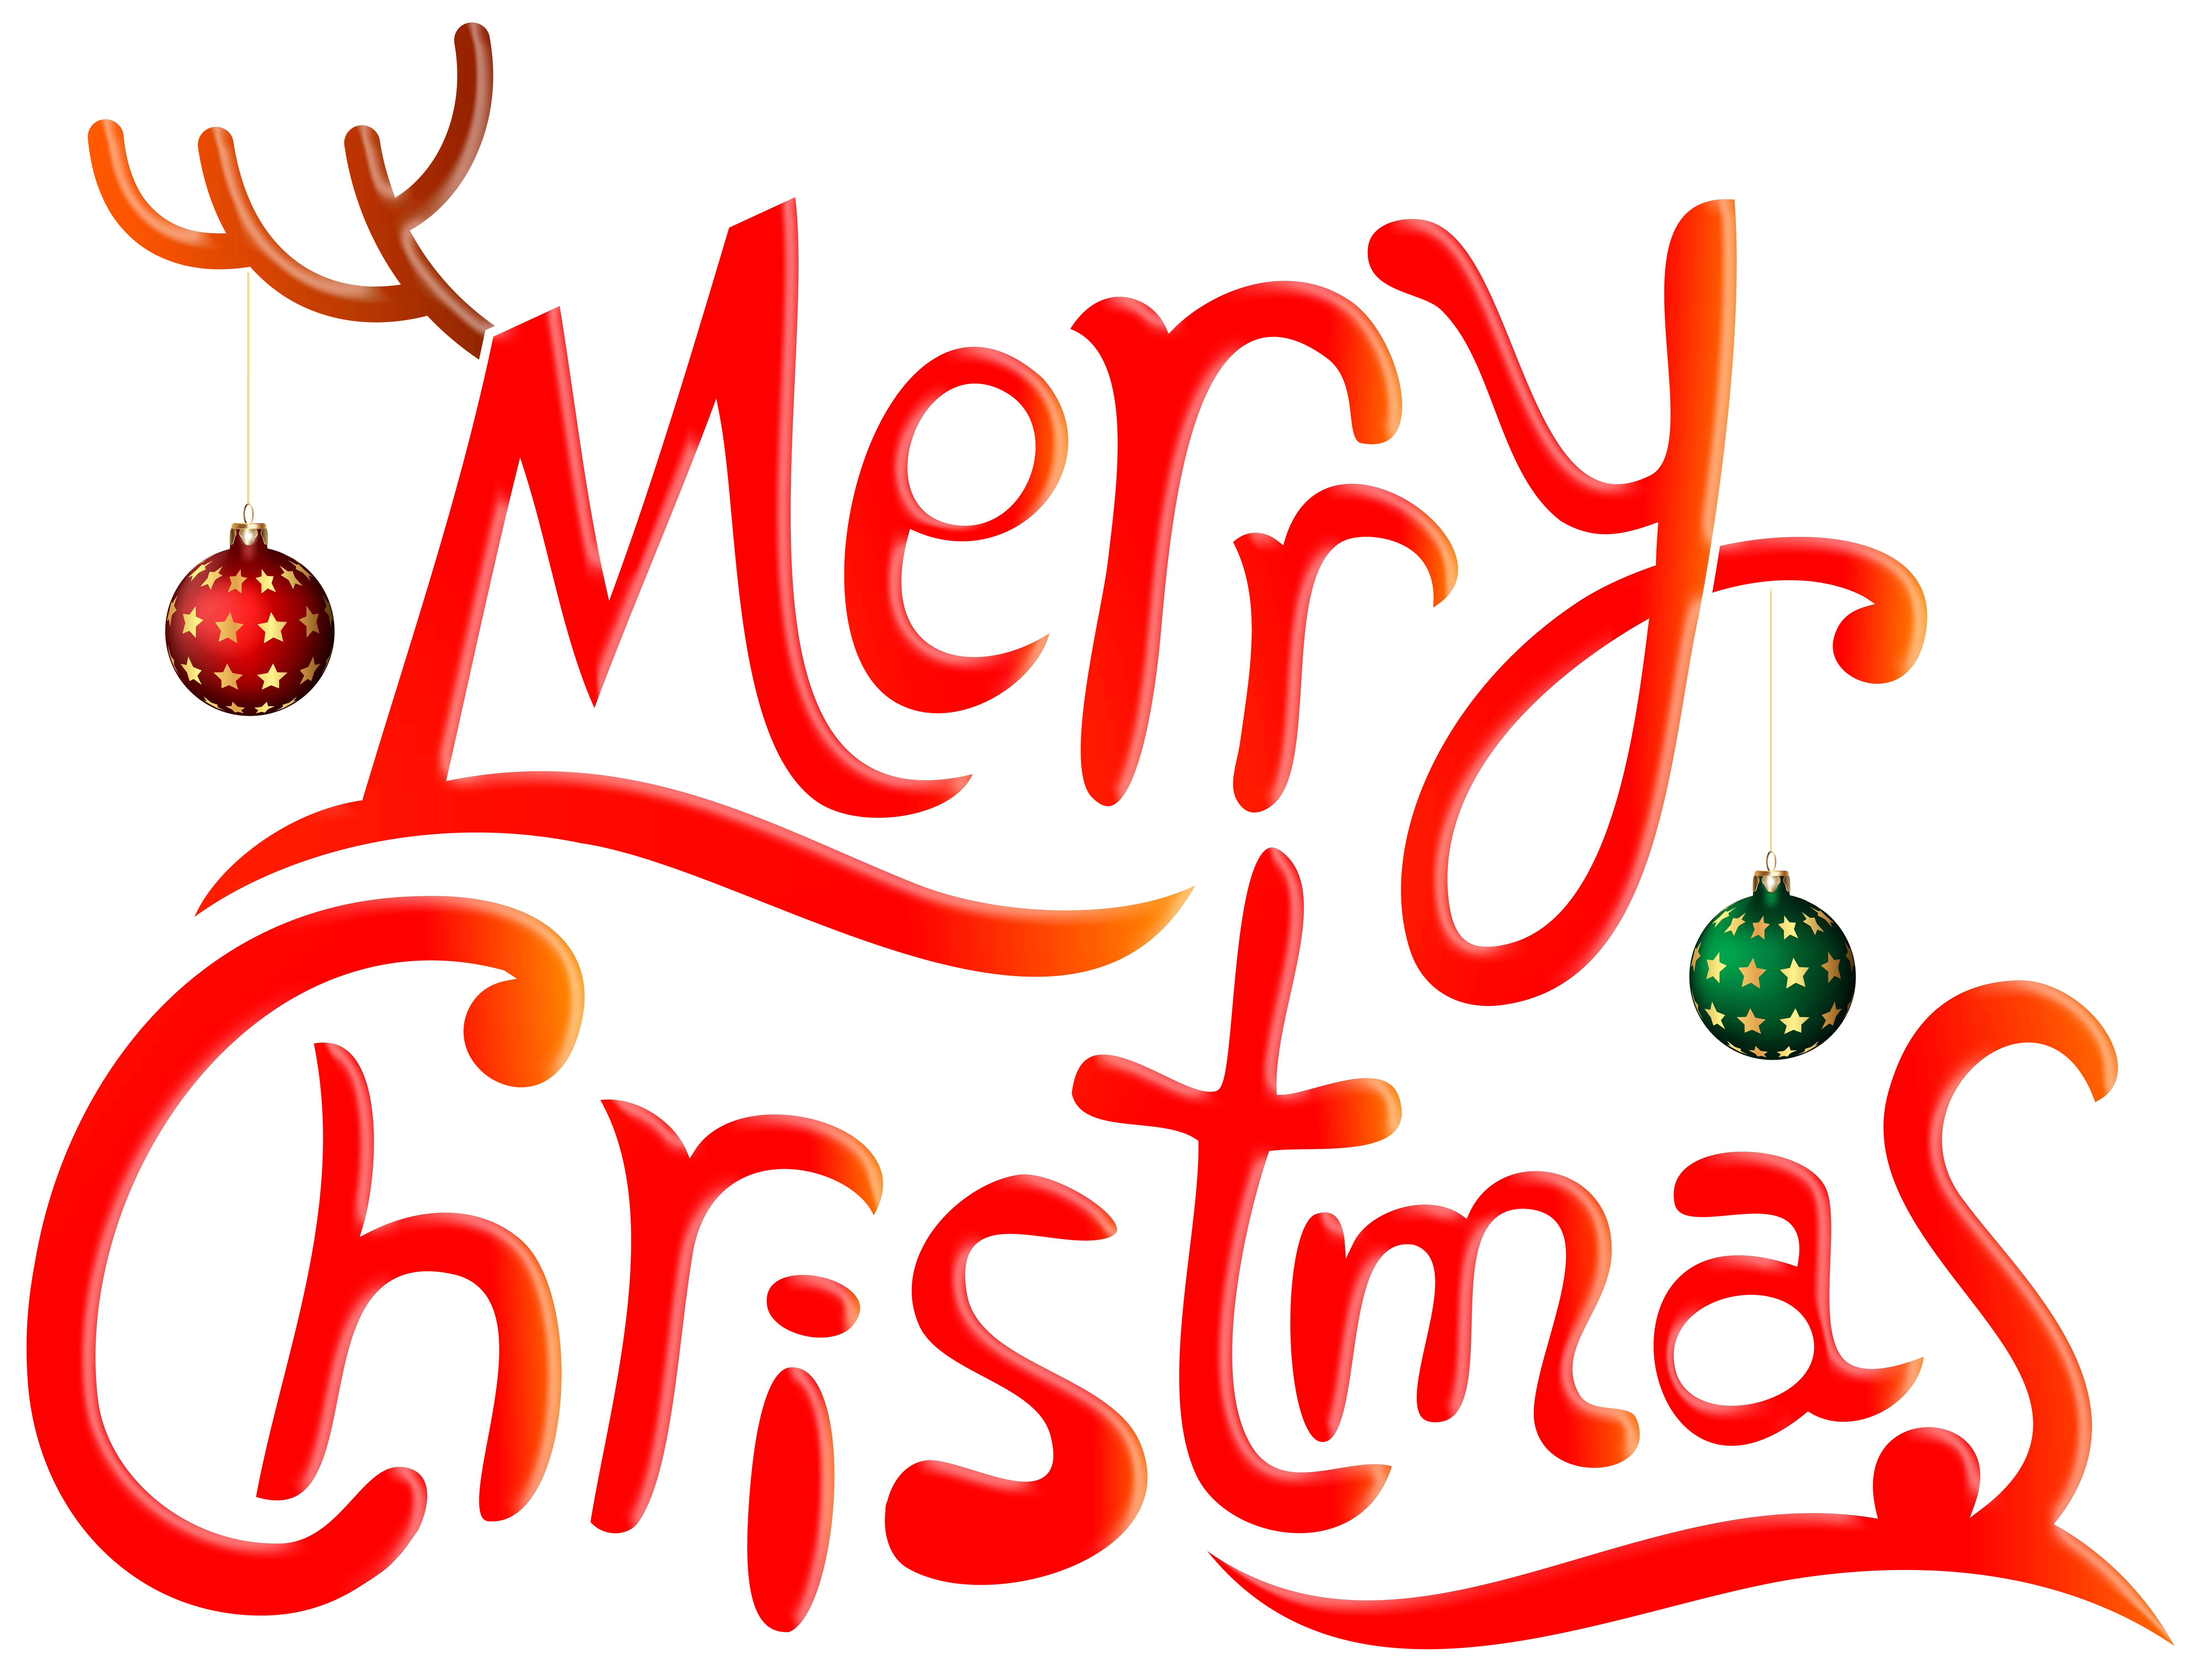 Merry Chrismas Funny PNG Clip Art Image.